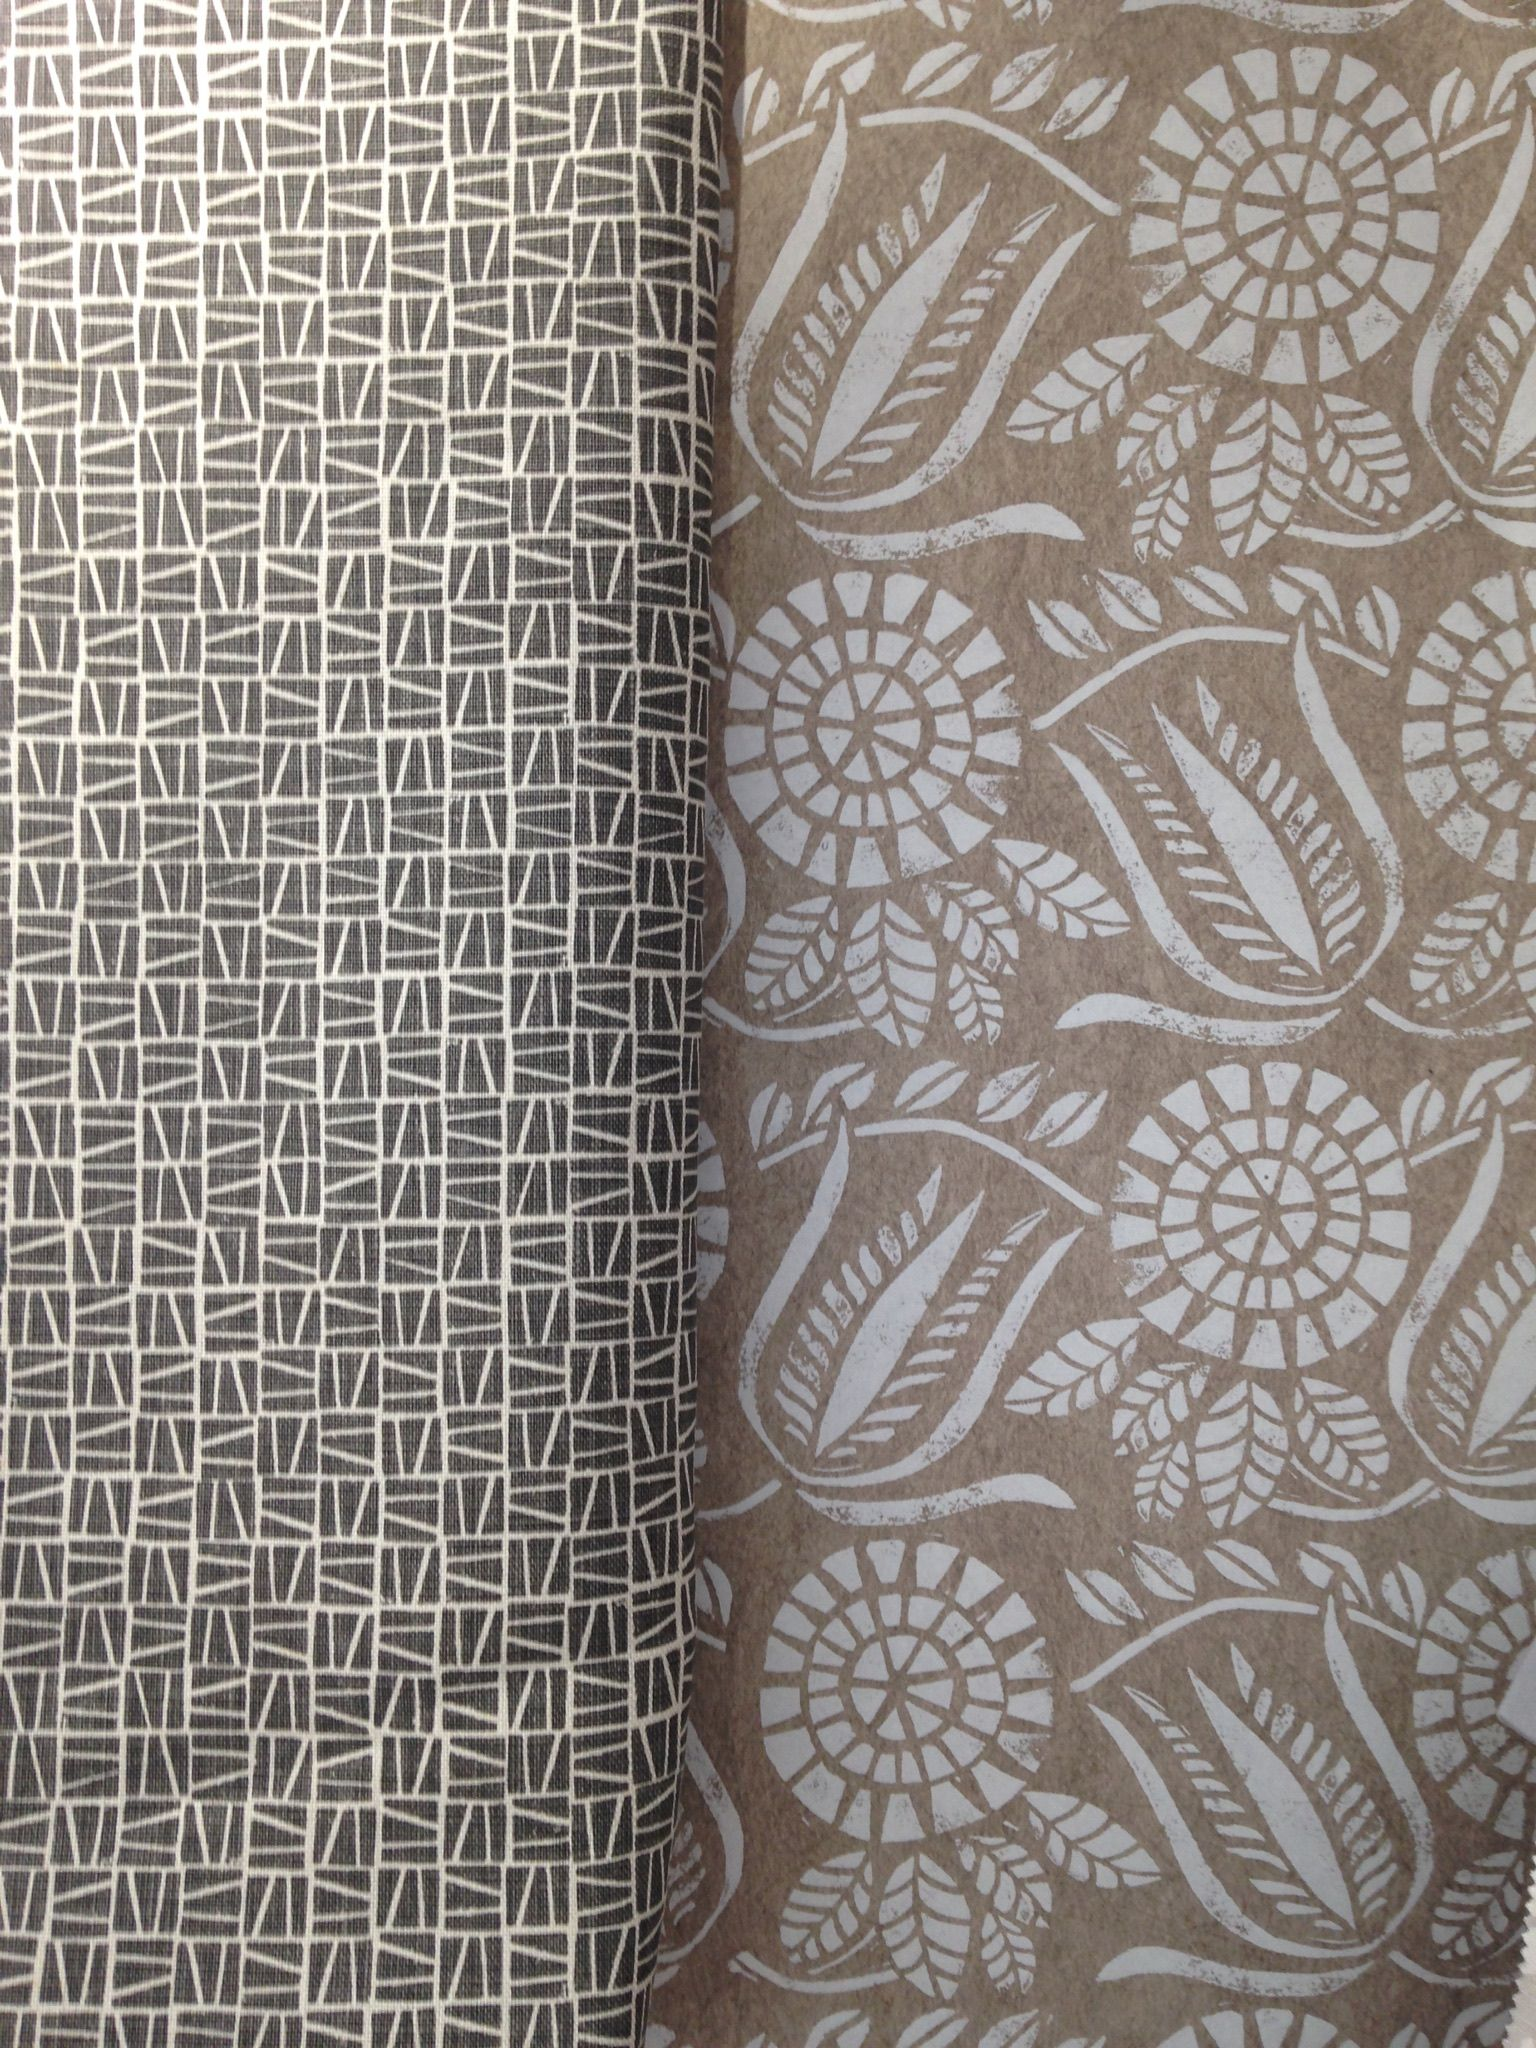 Camber hand printed in grey on linen and Bloomsbury Wallpaper in 1536x2048